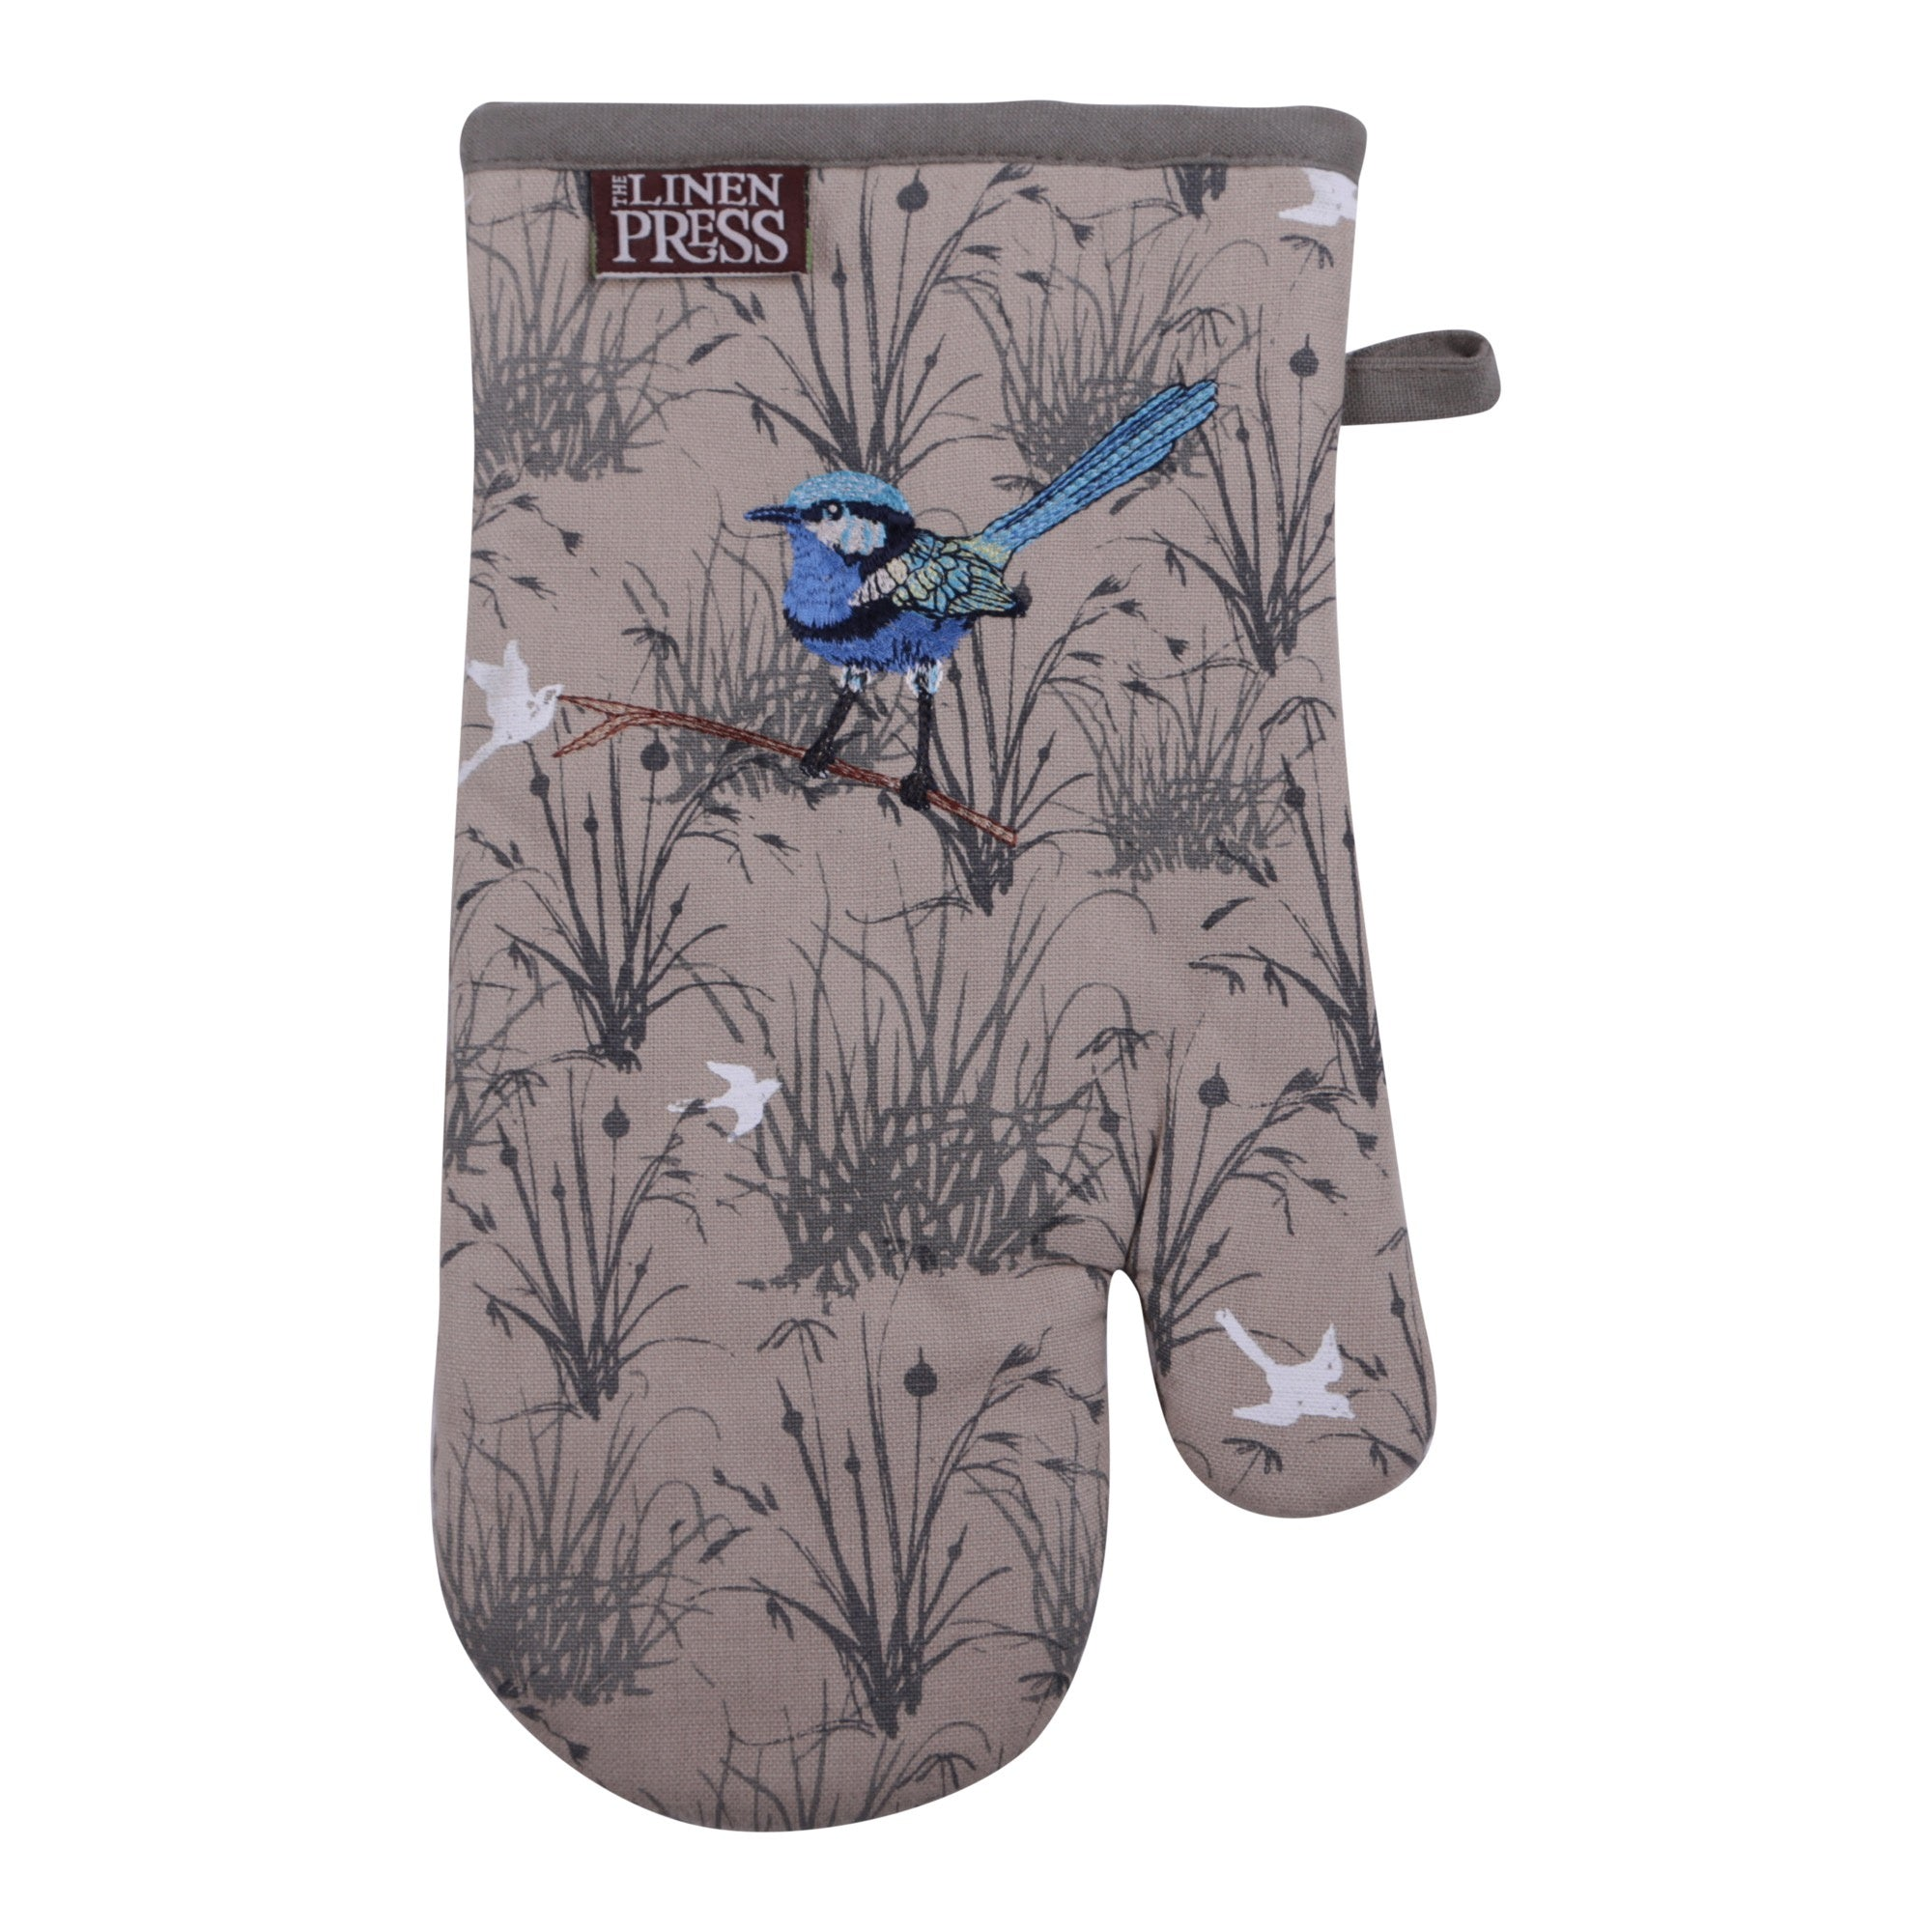 Linen Press Single Oven Mitt